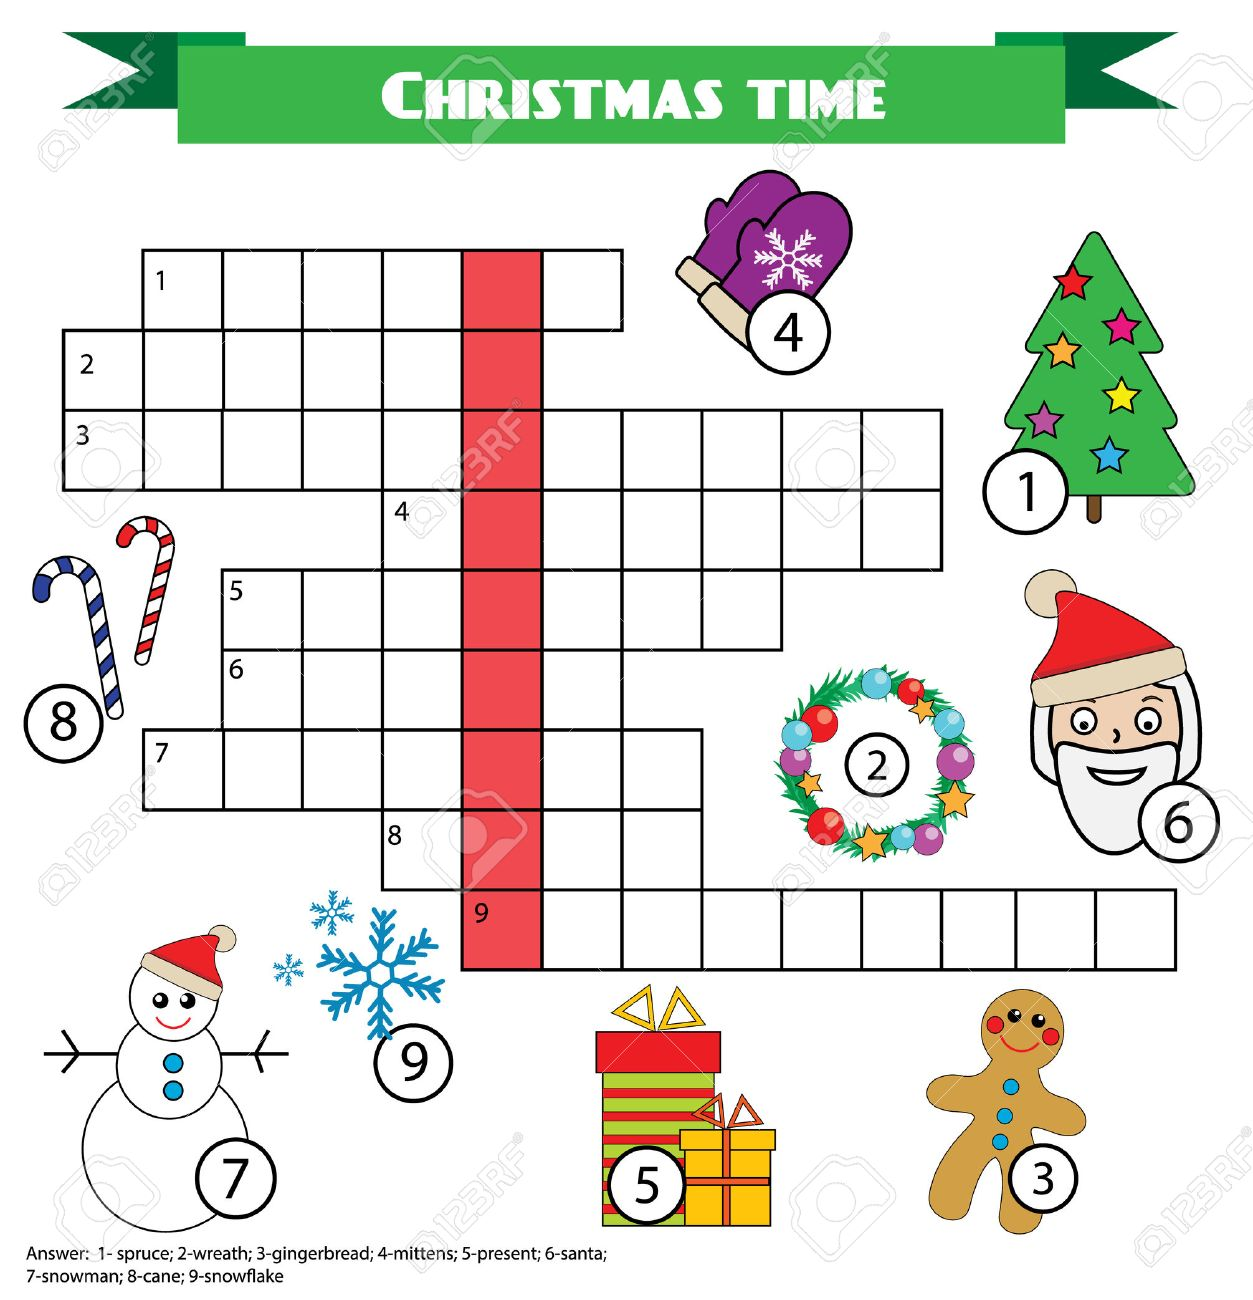 crossword educational children game with answer learning vocabulary printable worksheet christmas new